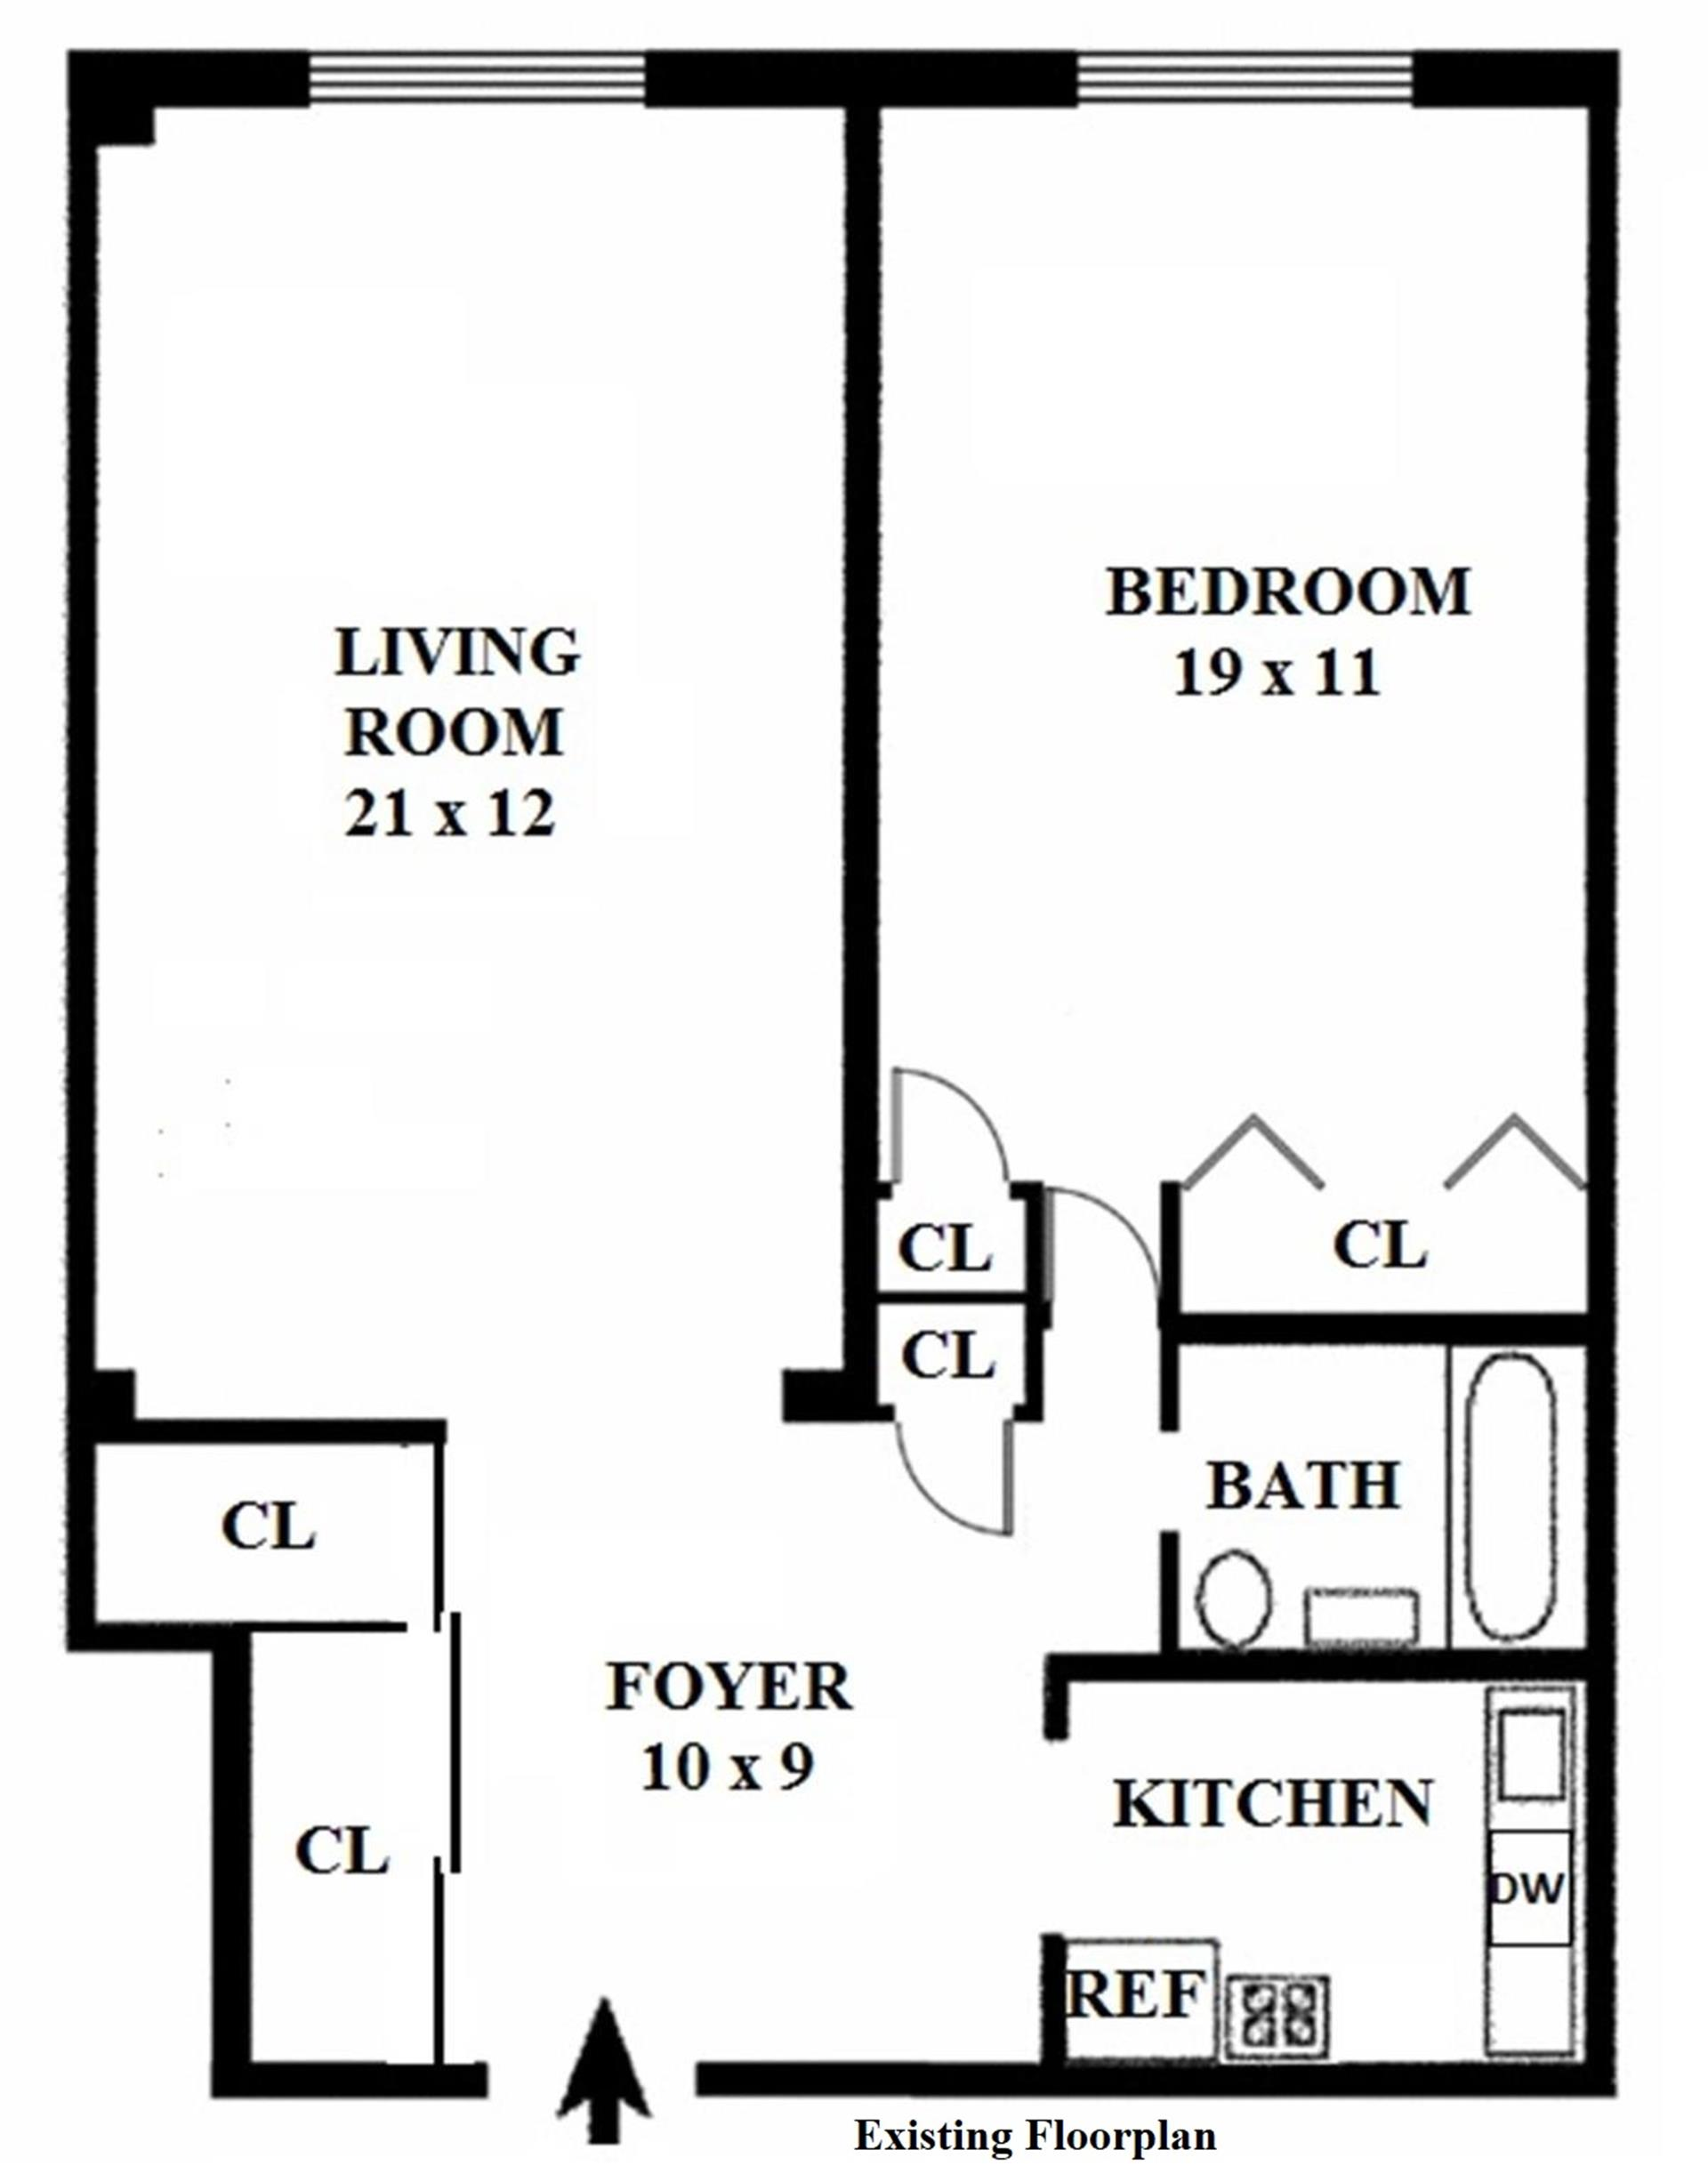 Floor plan of NORVILLE HOUSE, 13 West 13th Street, 6AS - Greenwich Village, New York